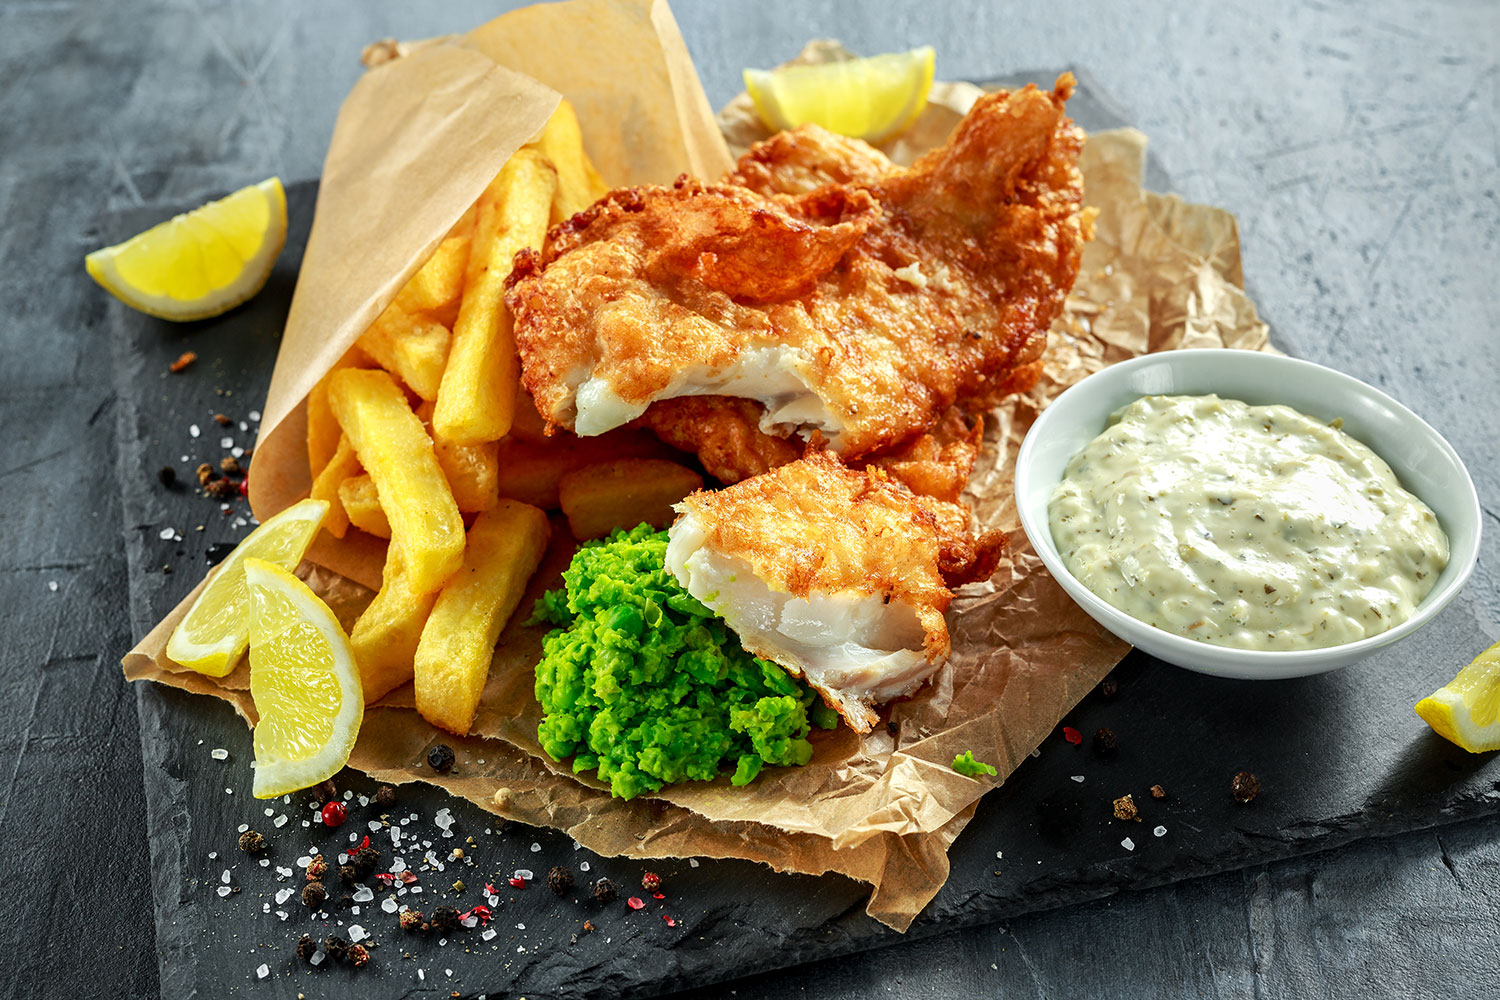 Atlantic-Cod-Fish-and-Chips-with-Mushy-Peas